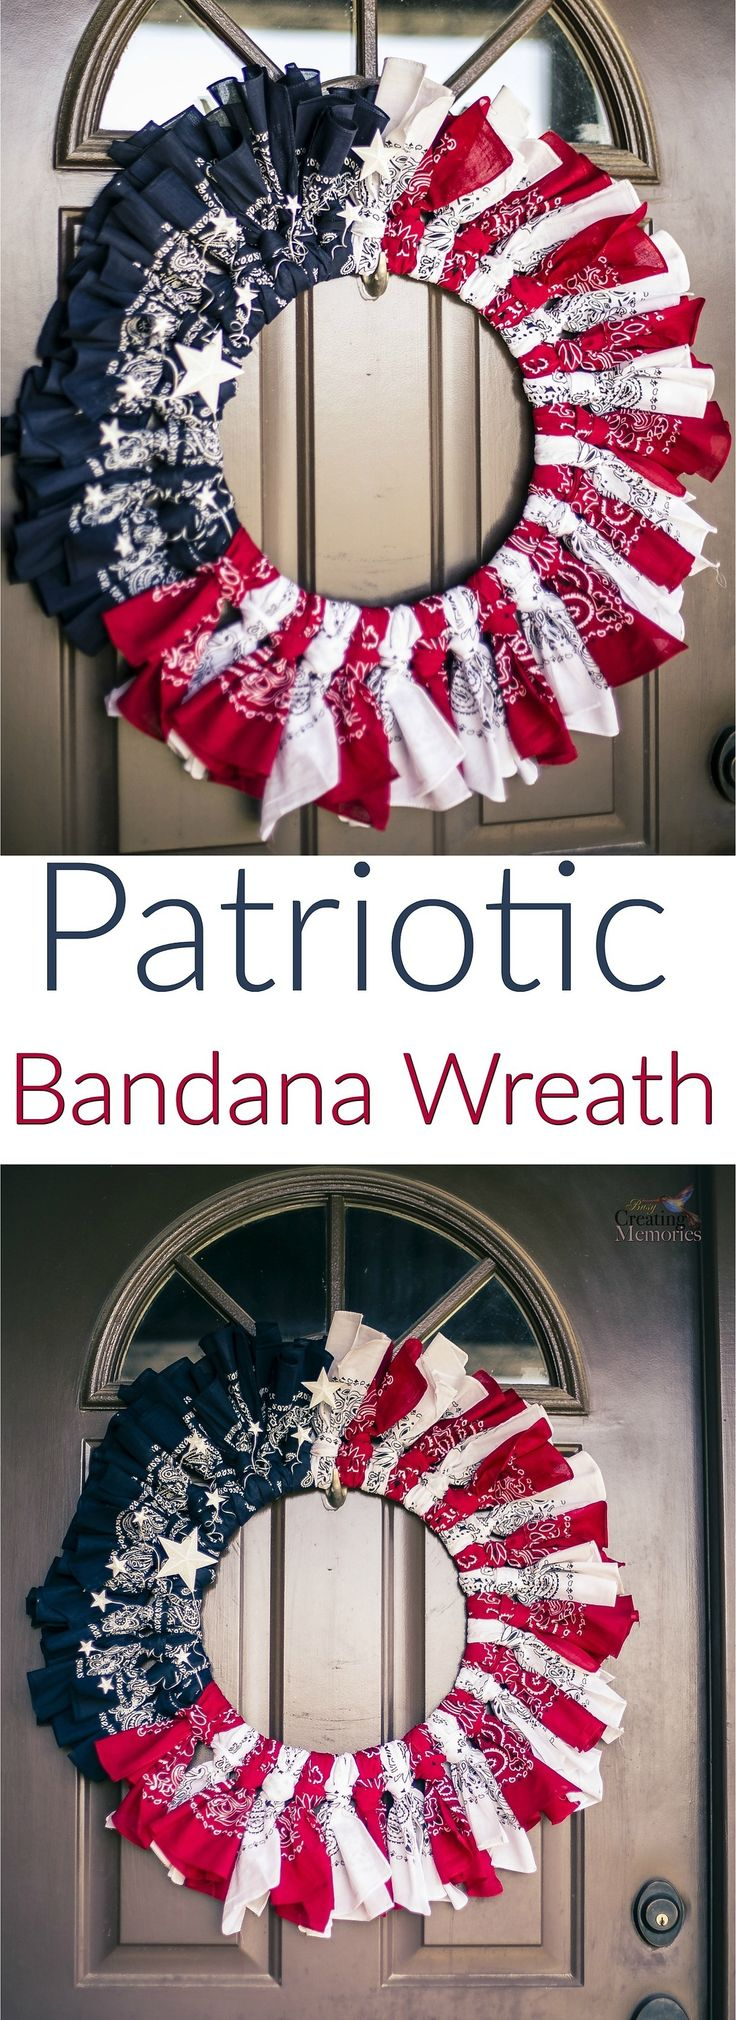 This Stunning and Easy DIY Patriotic Bandana Wreath for the front door is perfect for any patriotic holiday and is easy to create in less than an hour (minus drying time). You can show your American Pride or Military support on Memorial Day, 4th of July, Veterans Day or Labor Day! via @2creatememories